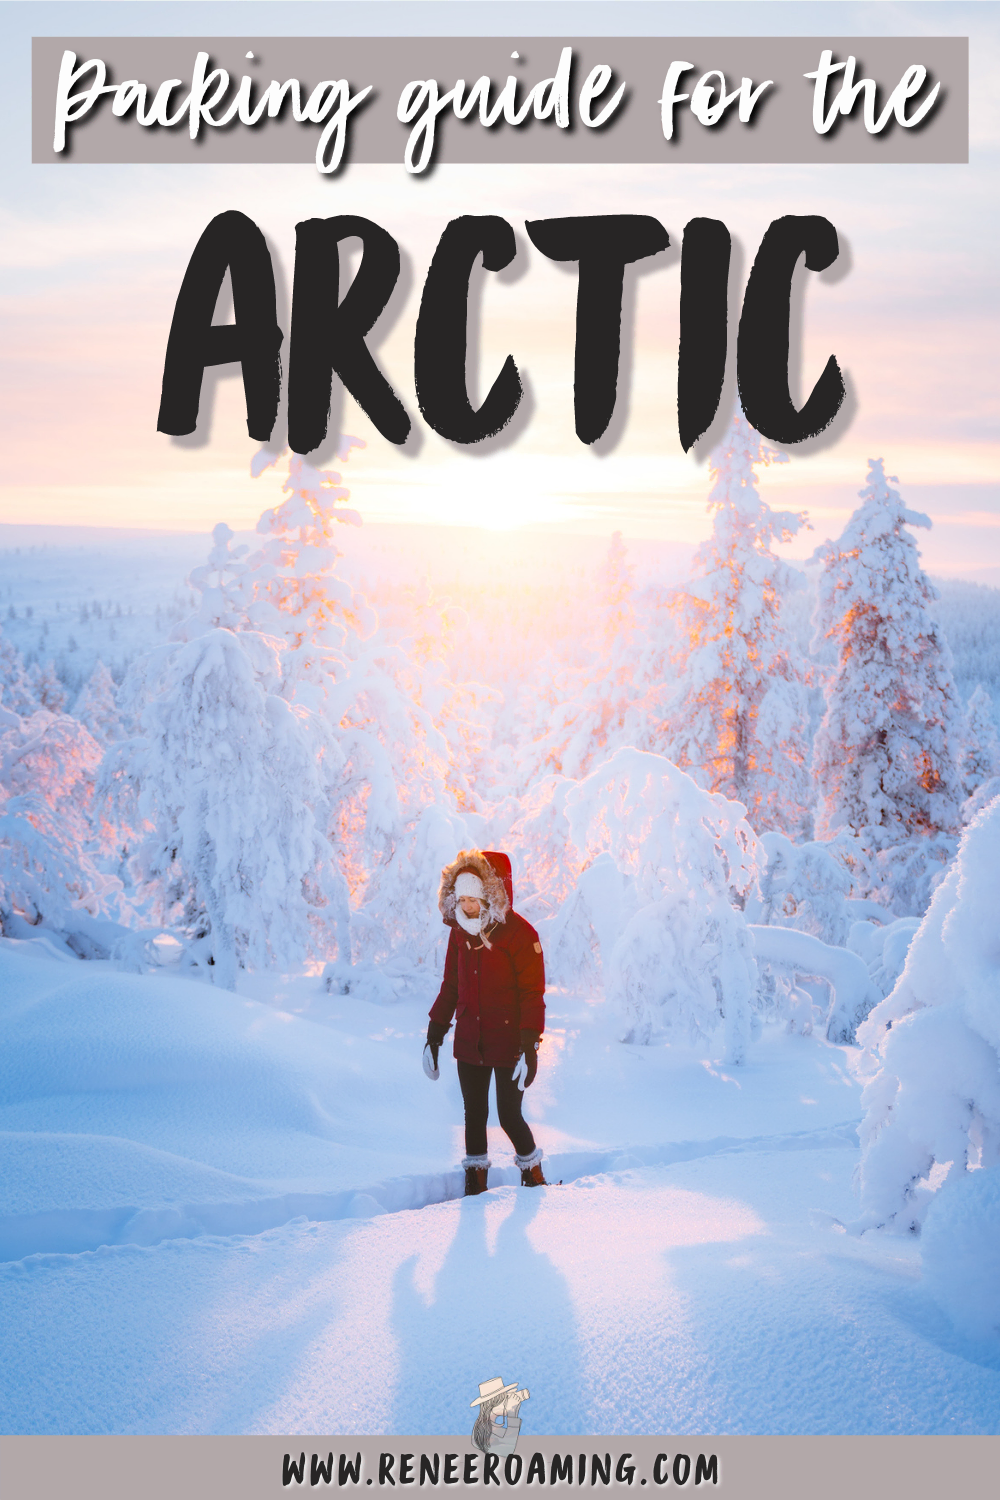 Packing for a Winter Trip to the Arctic - Complete Packing List and Tips